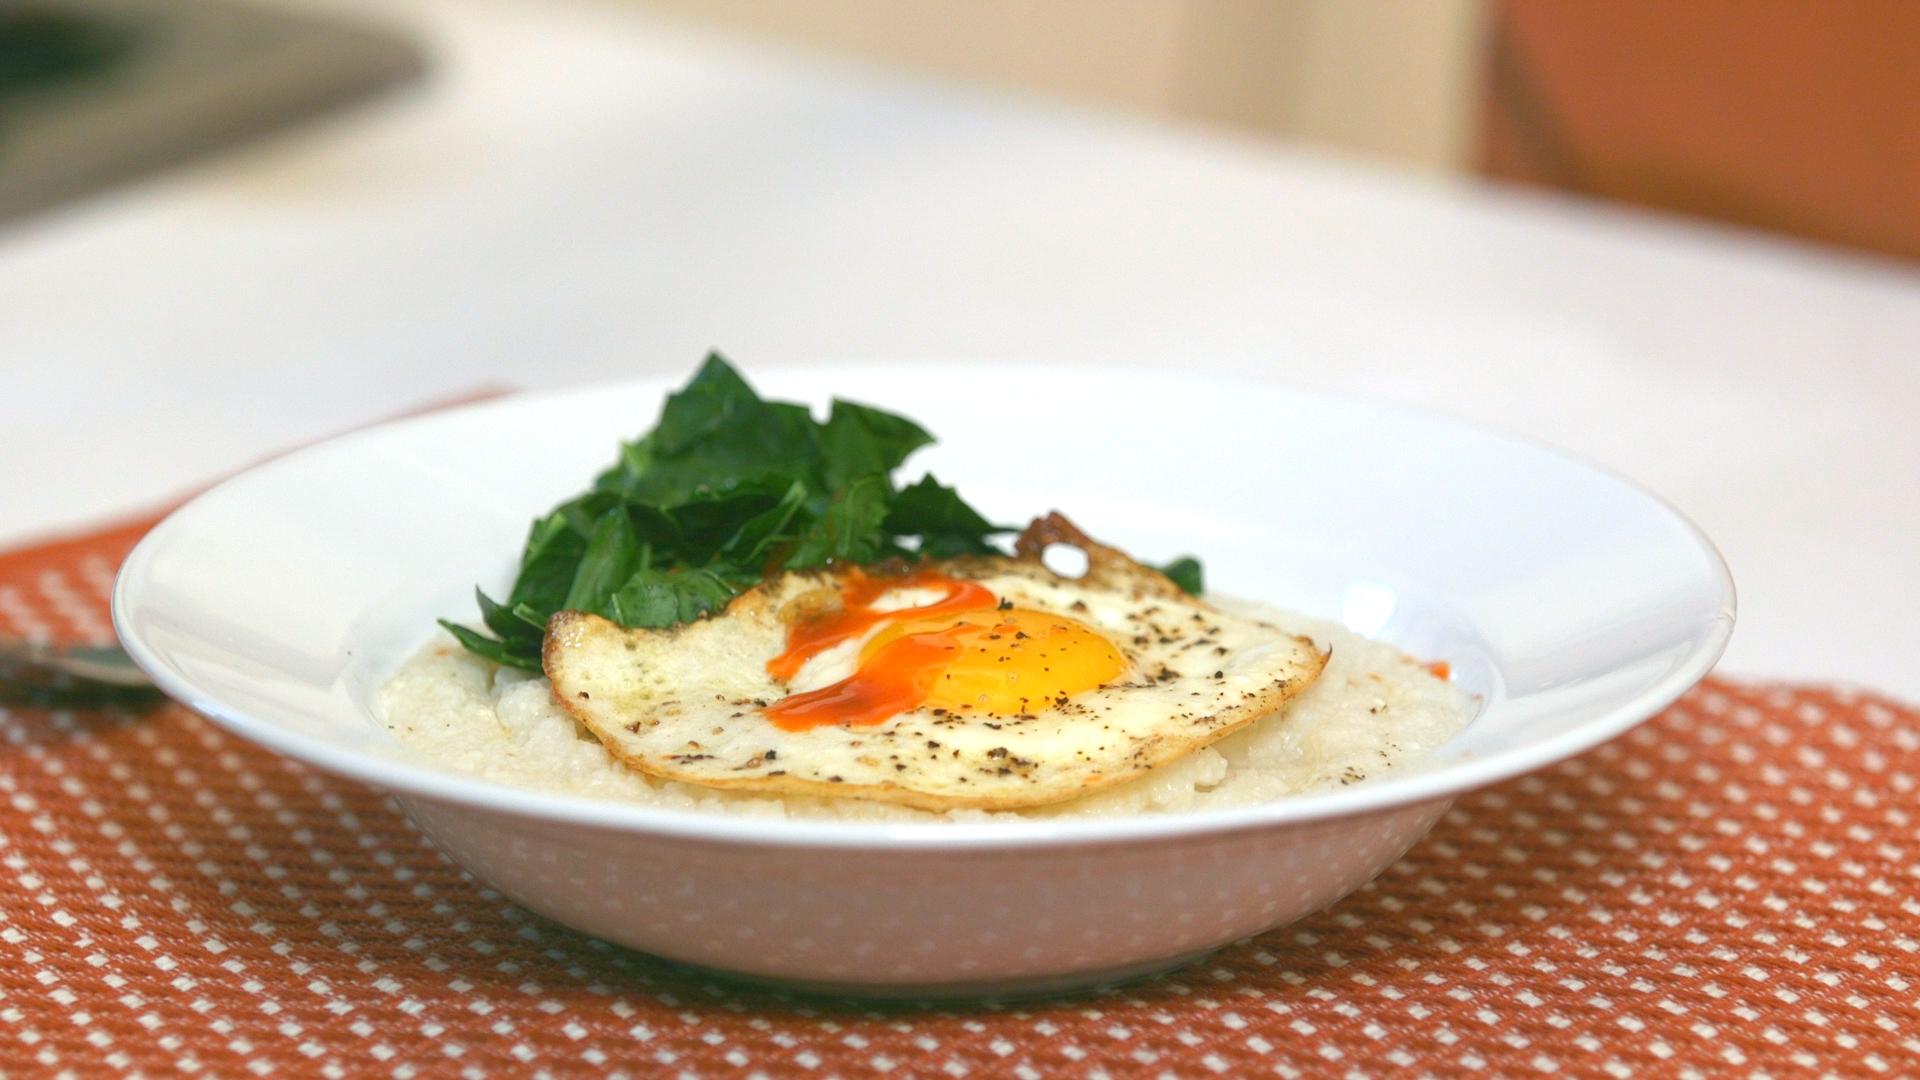 grits and greens recipe